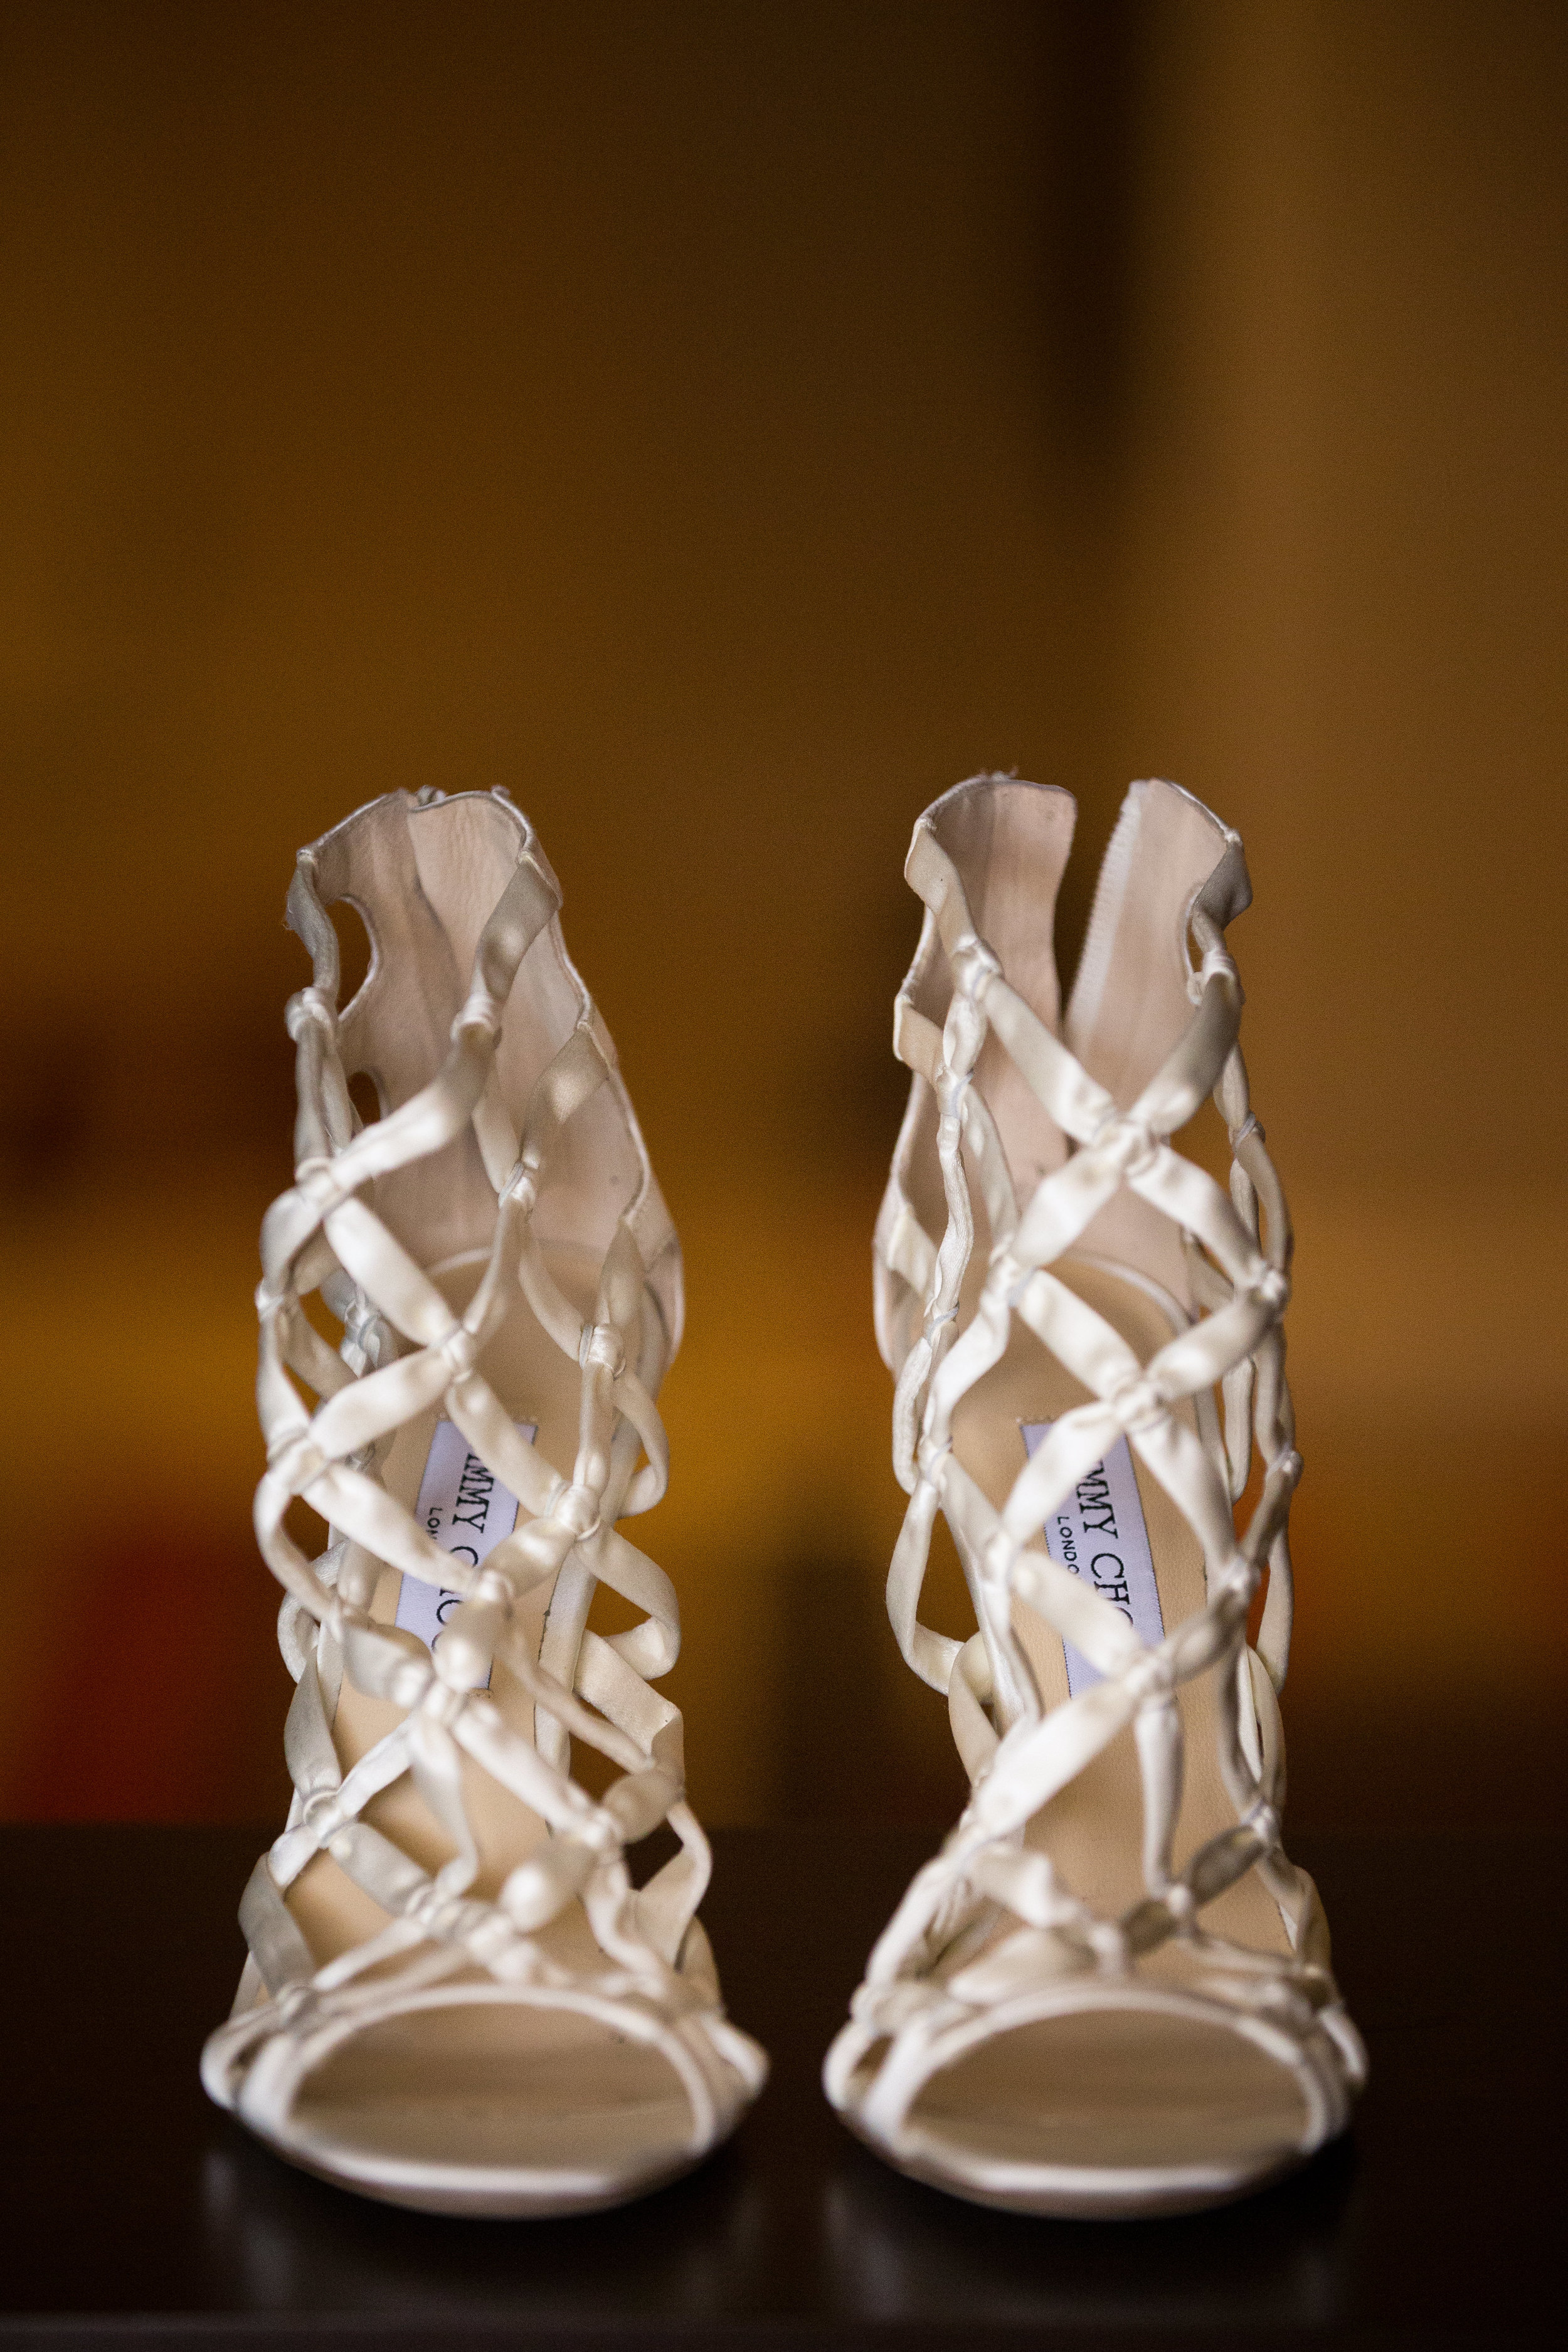 Jimmy Choo satin cage sandels.Wedding Planner:  Andrea Eppolito Events   | Photography  D2 Tuscan Wedding Photography  | Videography  M Place Productions  | Venue & Catering:  Bellagio  | Floral & Decor:  Destinations by Design  | Lighting:  LED Unplugged   | Music: Classical Entertainment &  DJ Mike Fox  | Hair & Make Up:  Amelia C & Co